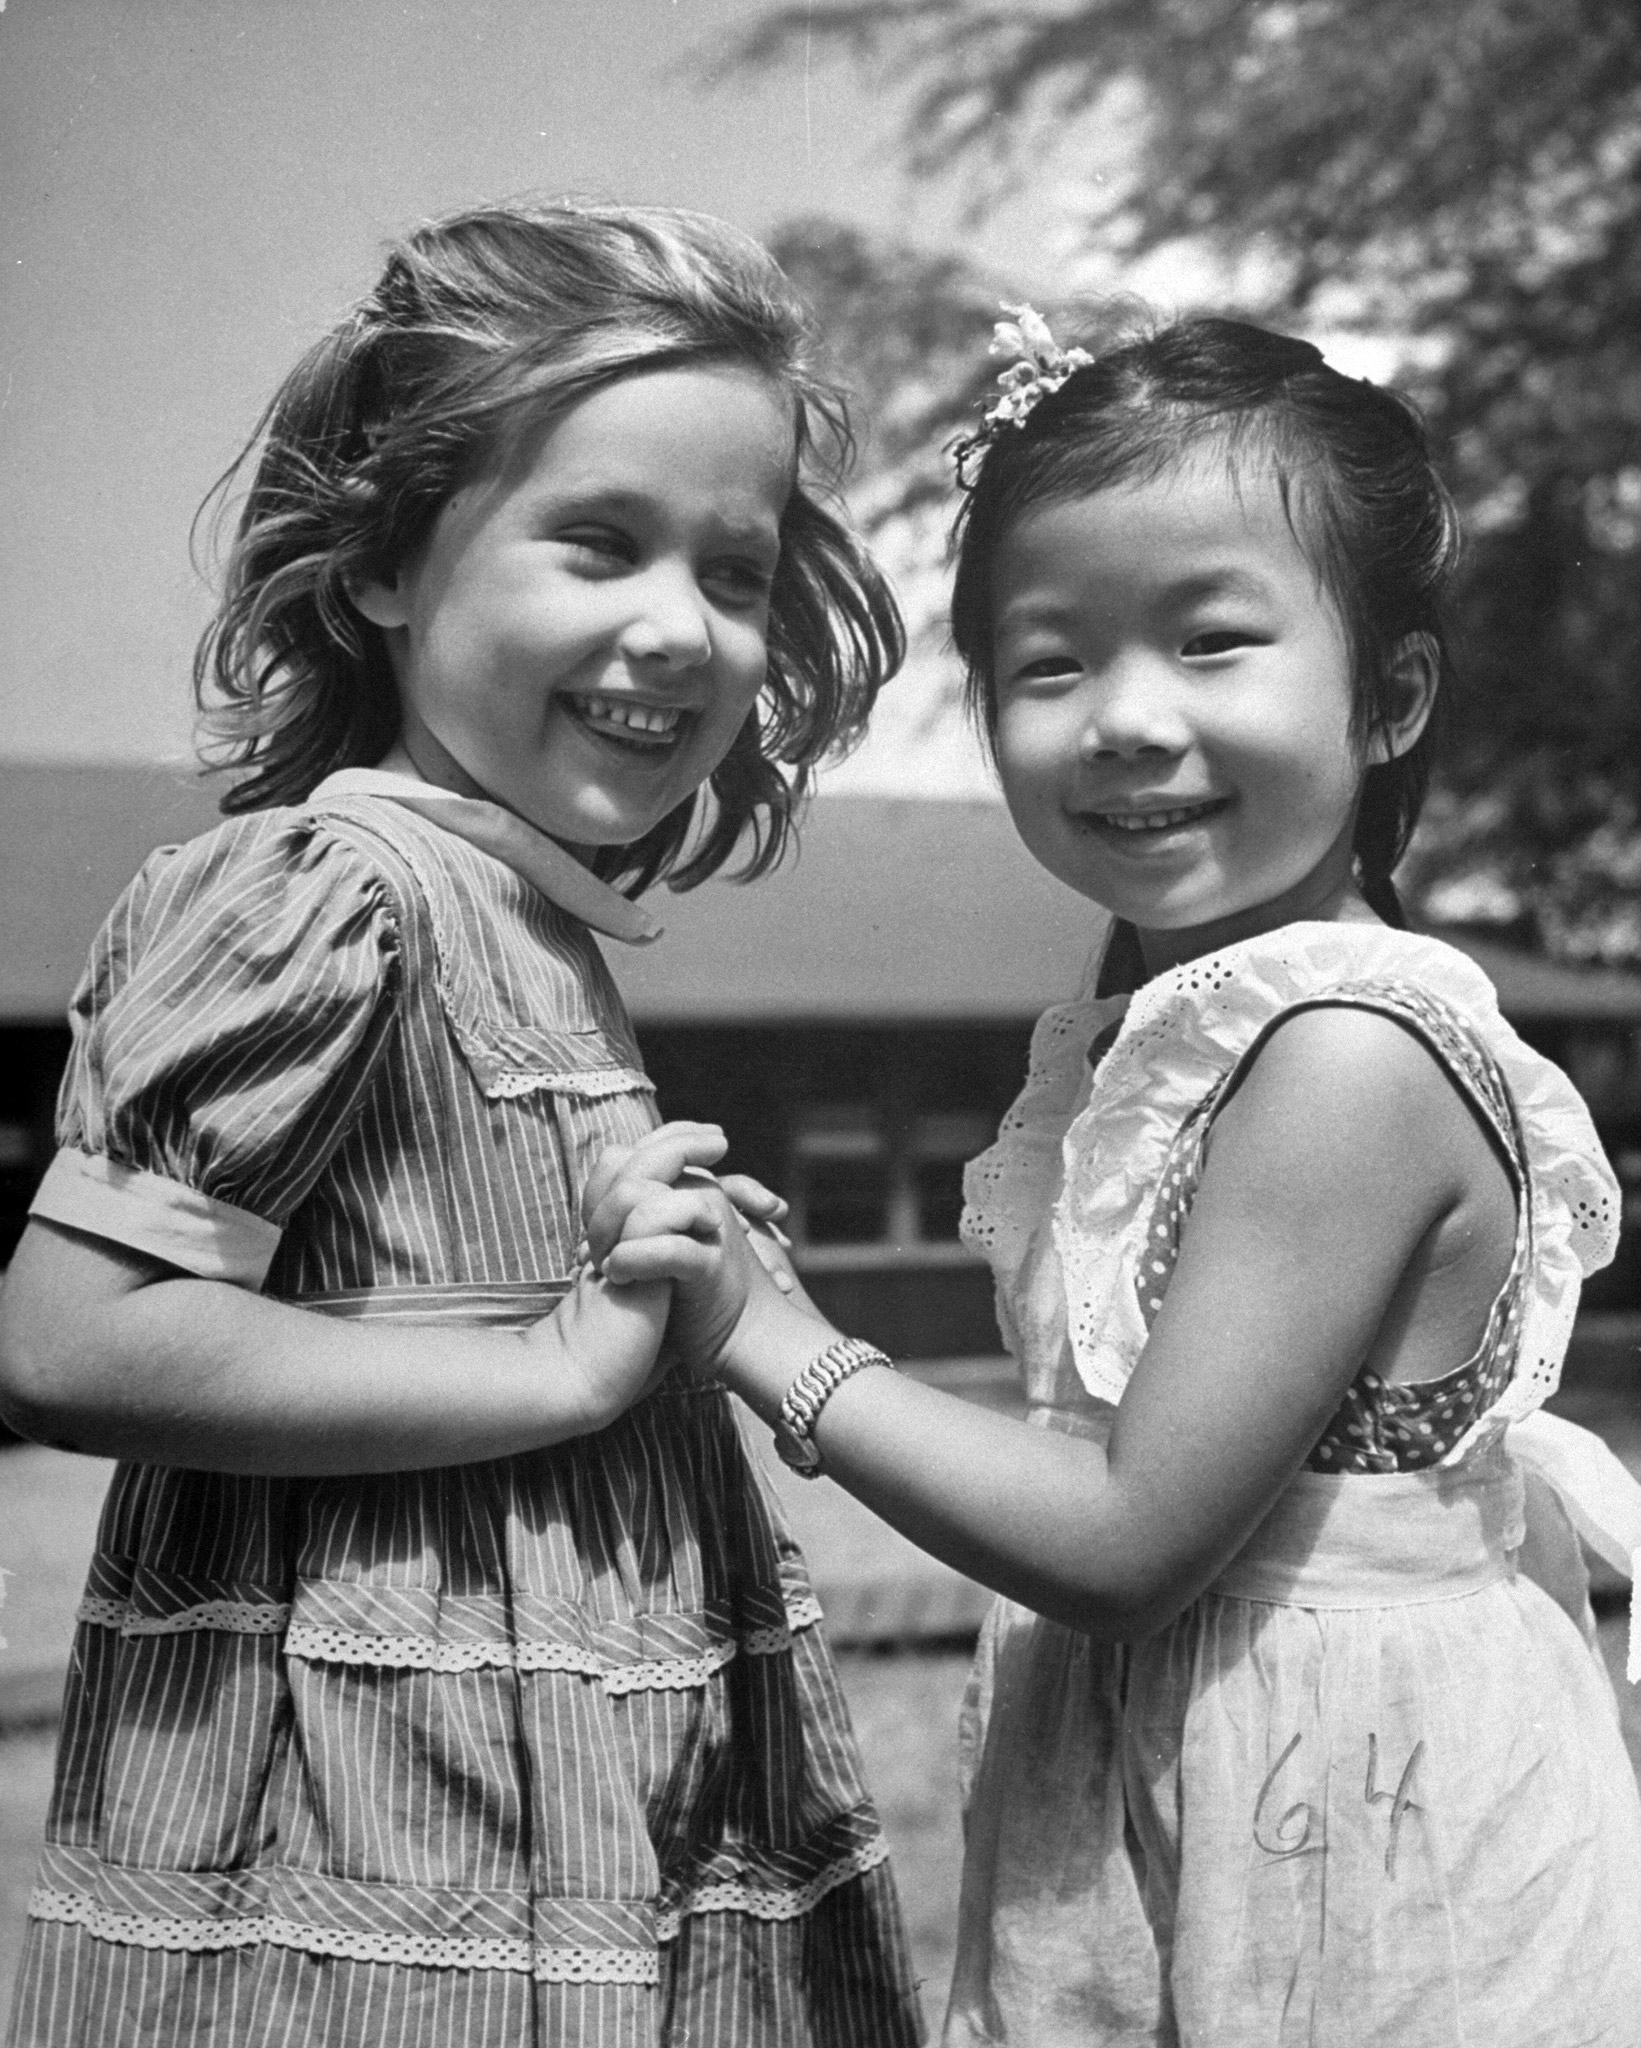 <b>Caption from LIFE.</b> Mary Lou Parker, 4, plays with Letty Mai Pang, 5, a Chinese [schoolmate], in the playground of a polyracial Honolulu school.